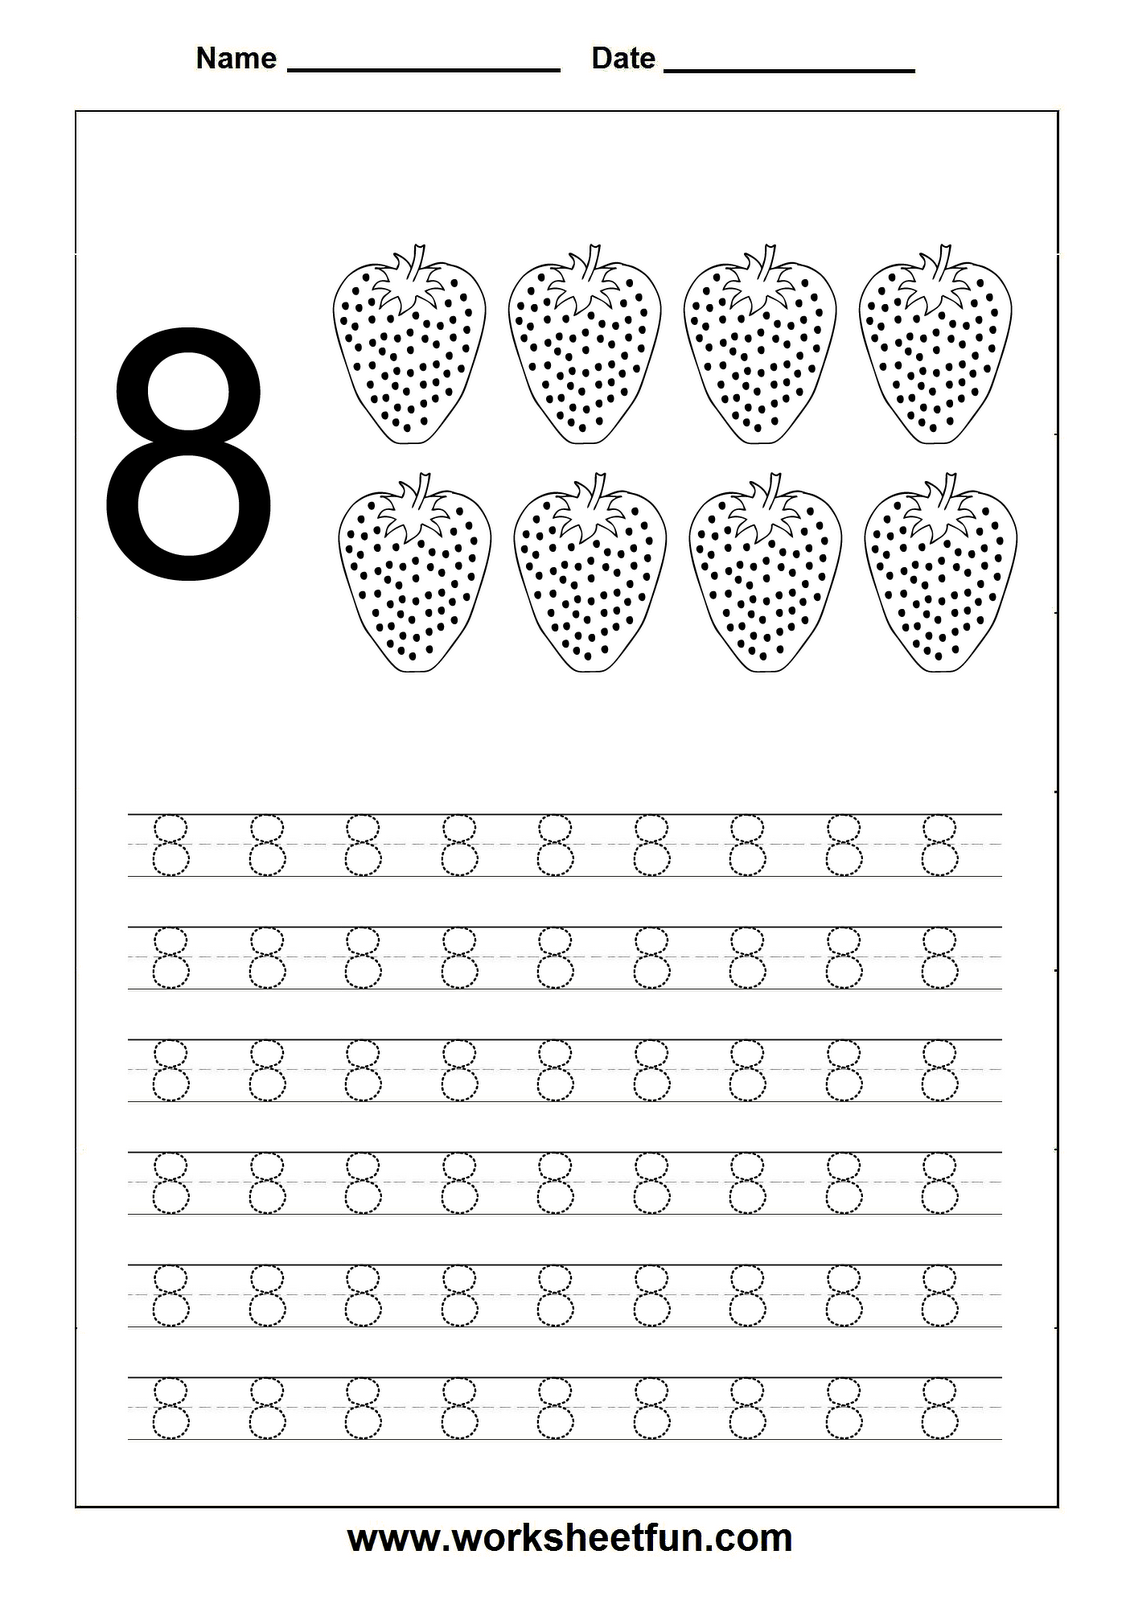 Numbers tracing worksheets 1 for kindergarten Printable Coloring – Tracing Numbers Worksheets for Kindergarten